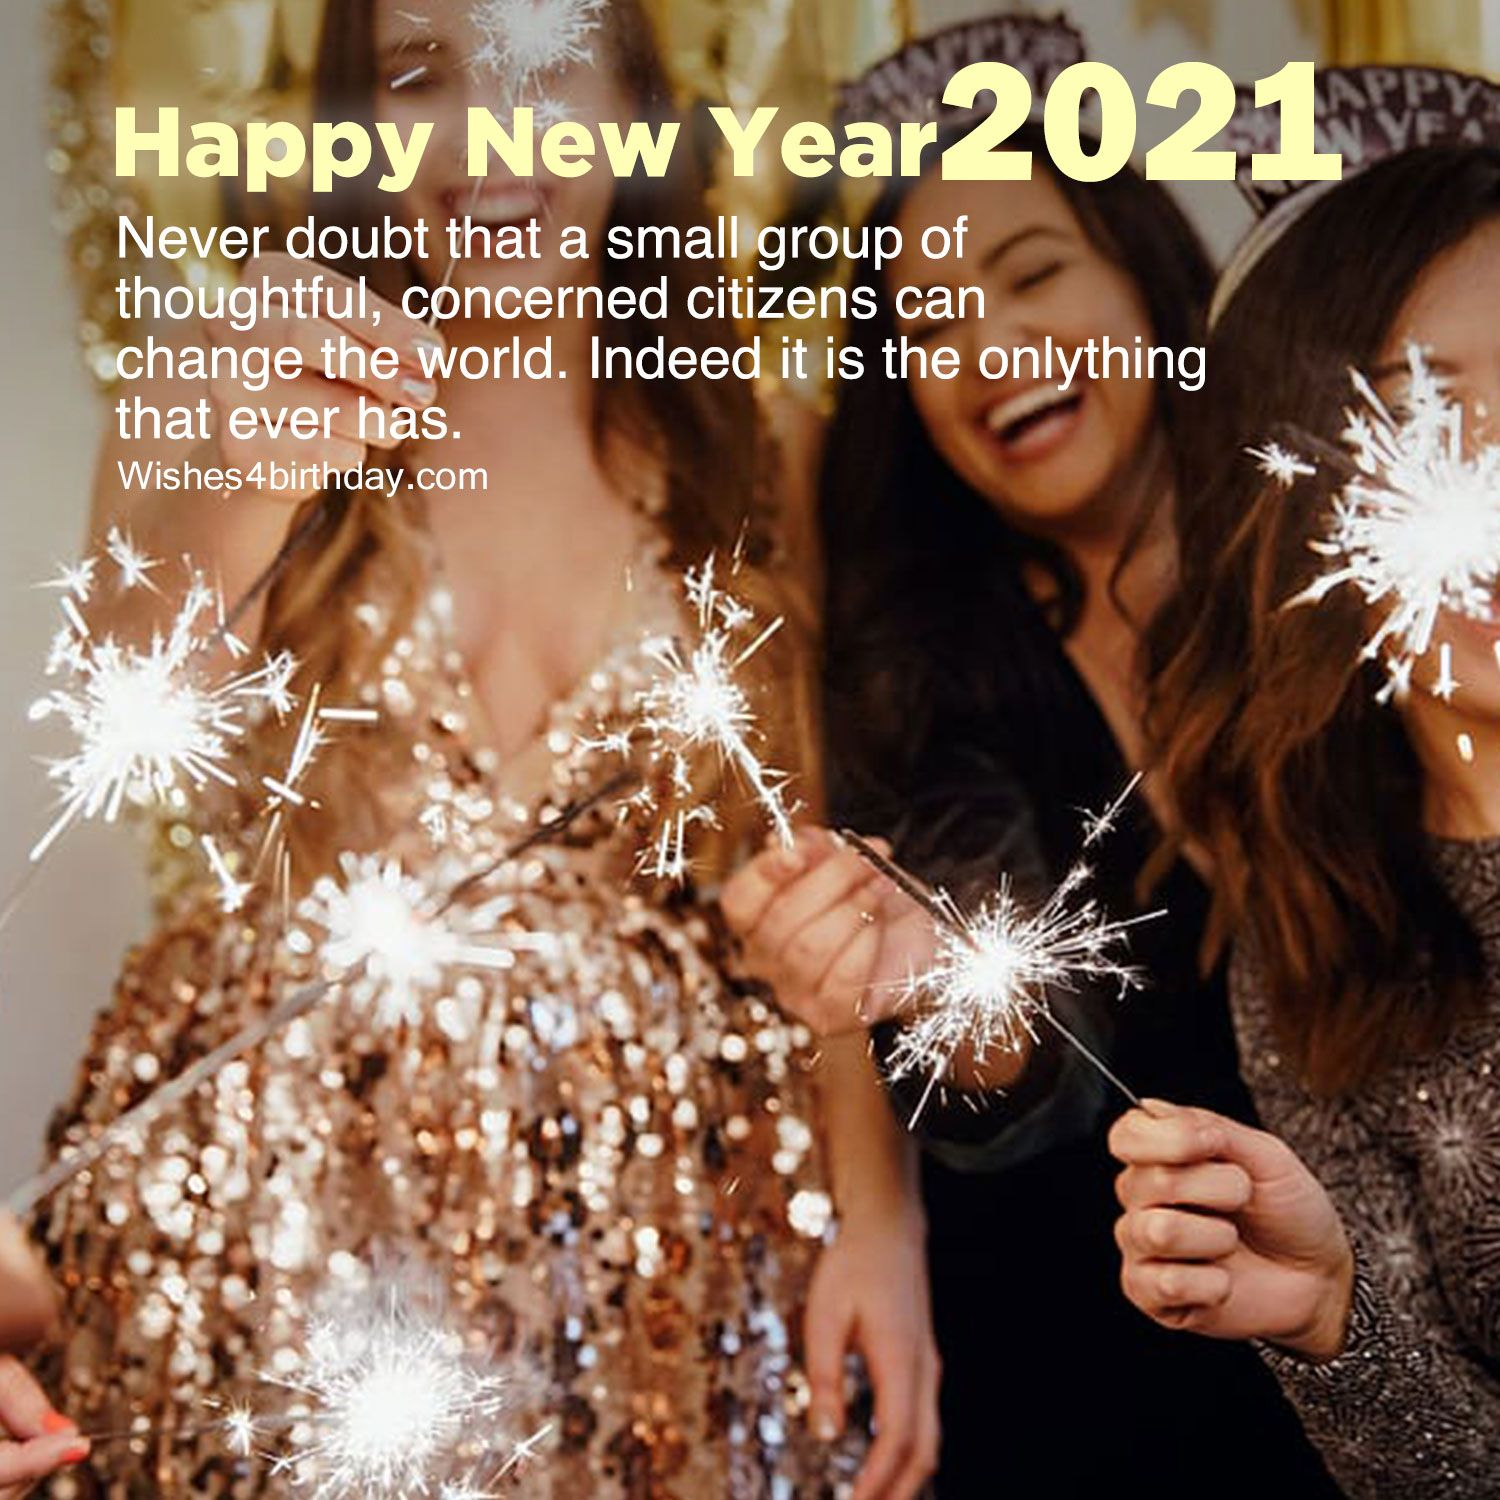 Lovely Morning with Happy new year 2021 photo countdown in